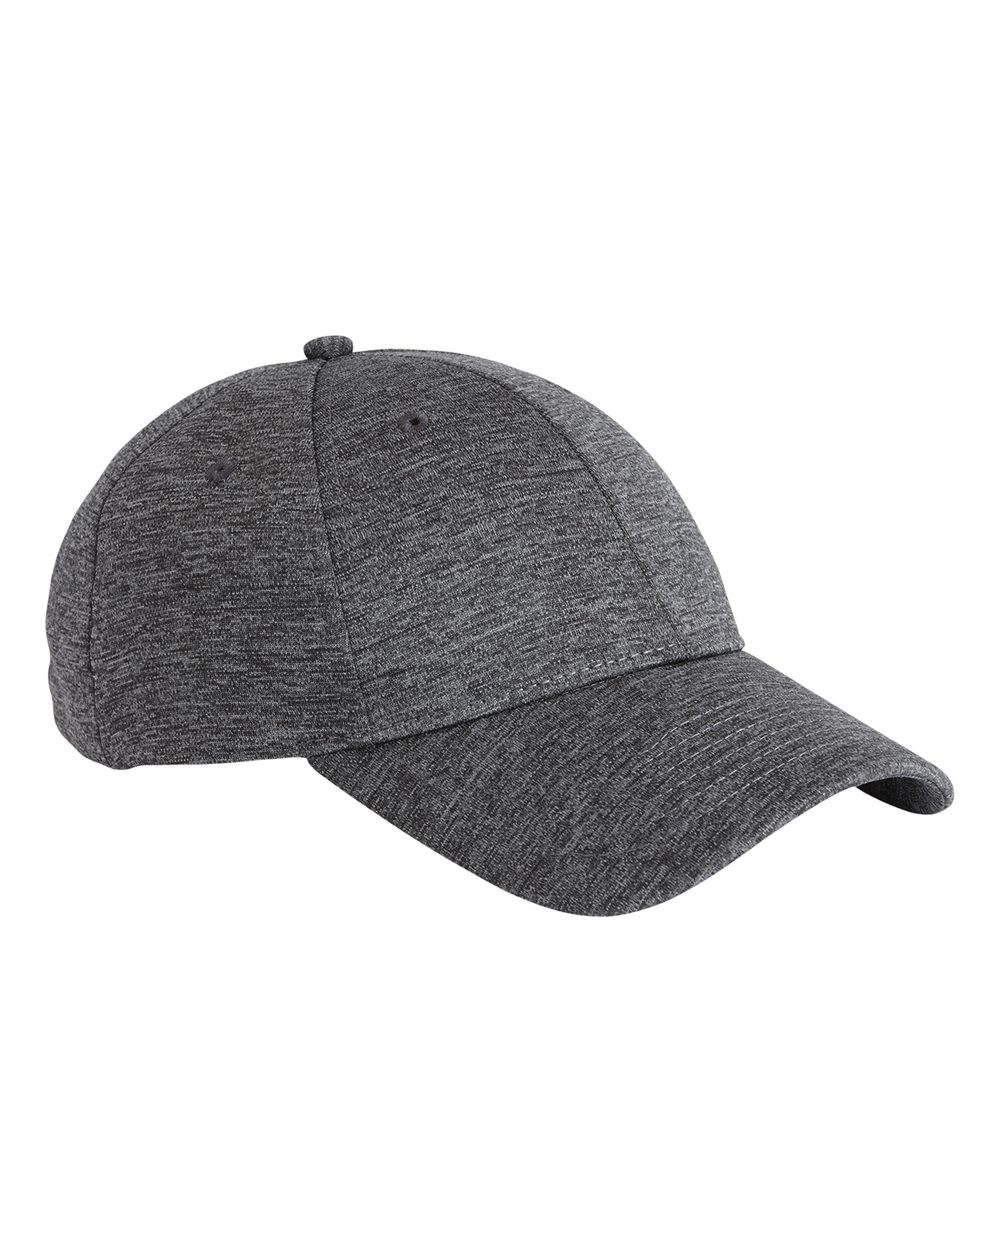 Sportsman SP900 - Shadow Tech Marled Cap